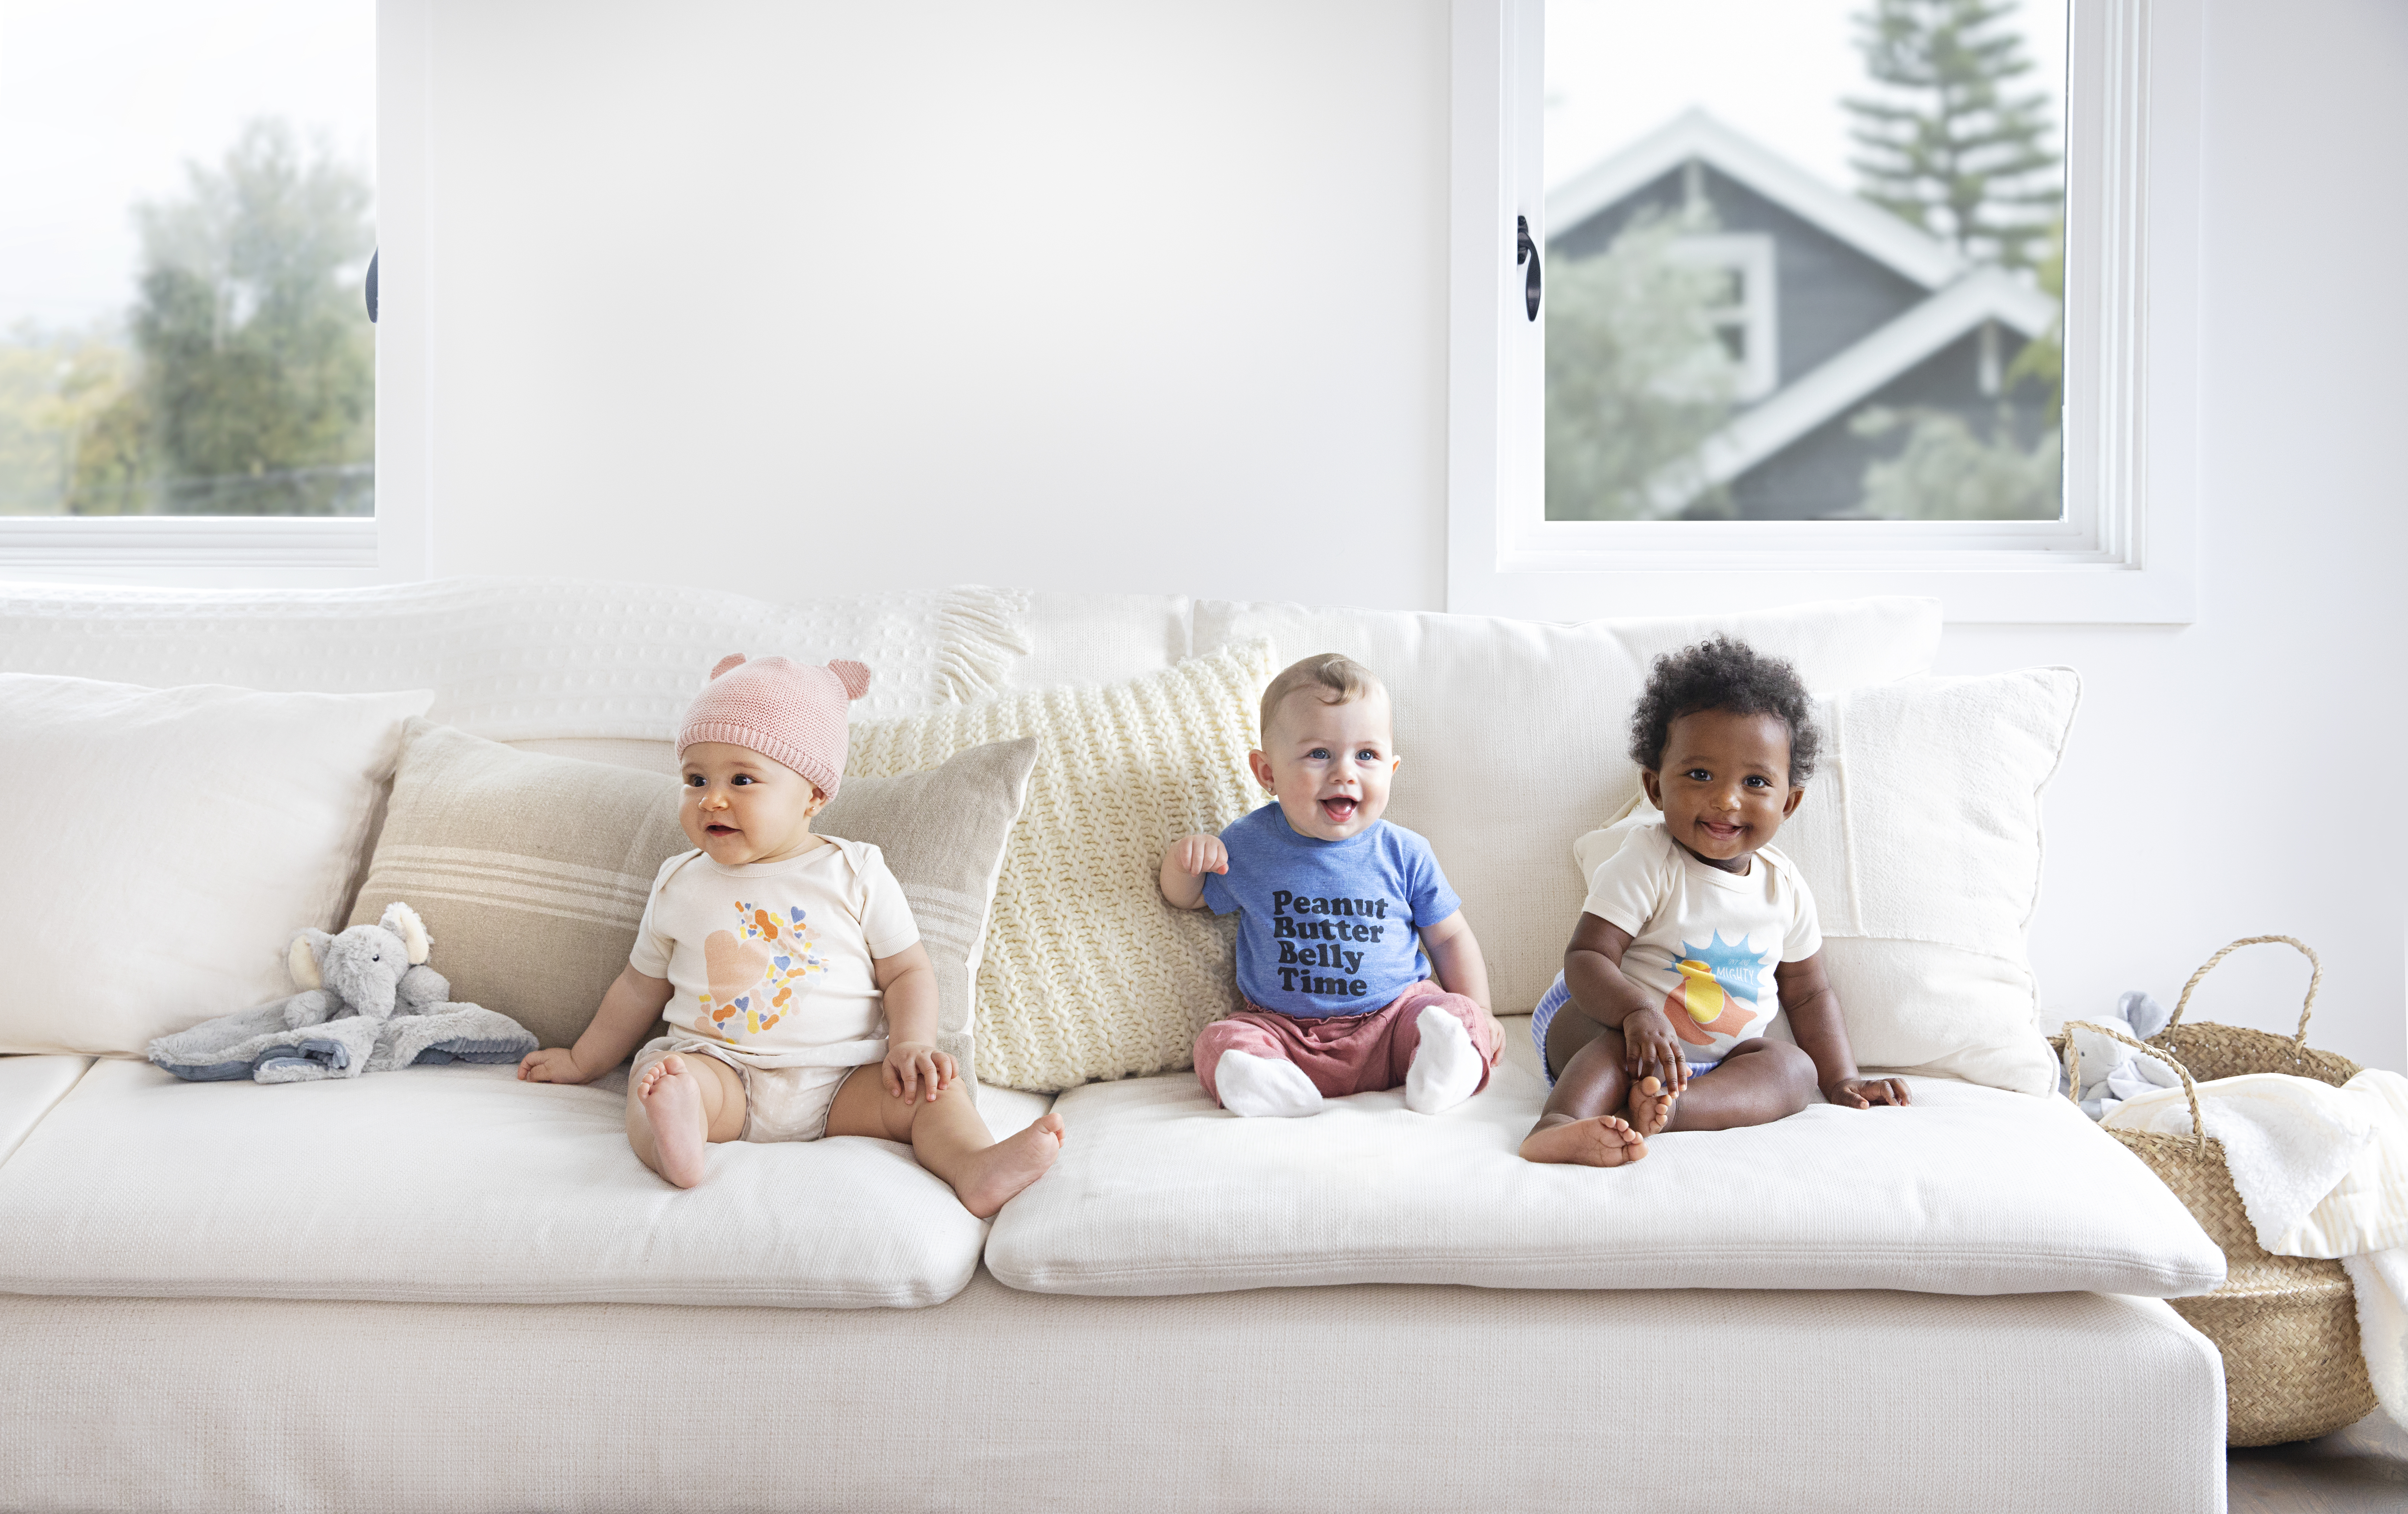 3 babies on a couch